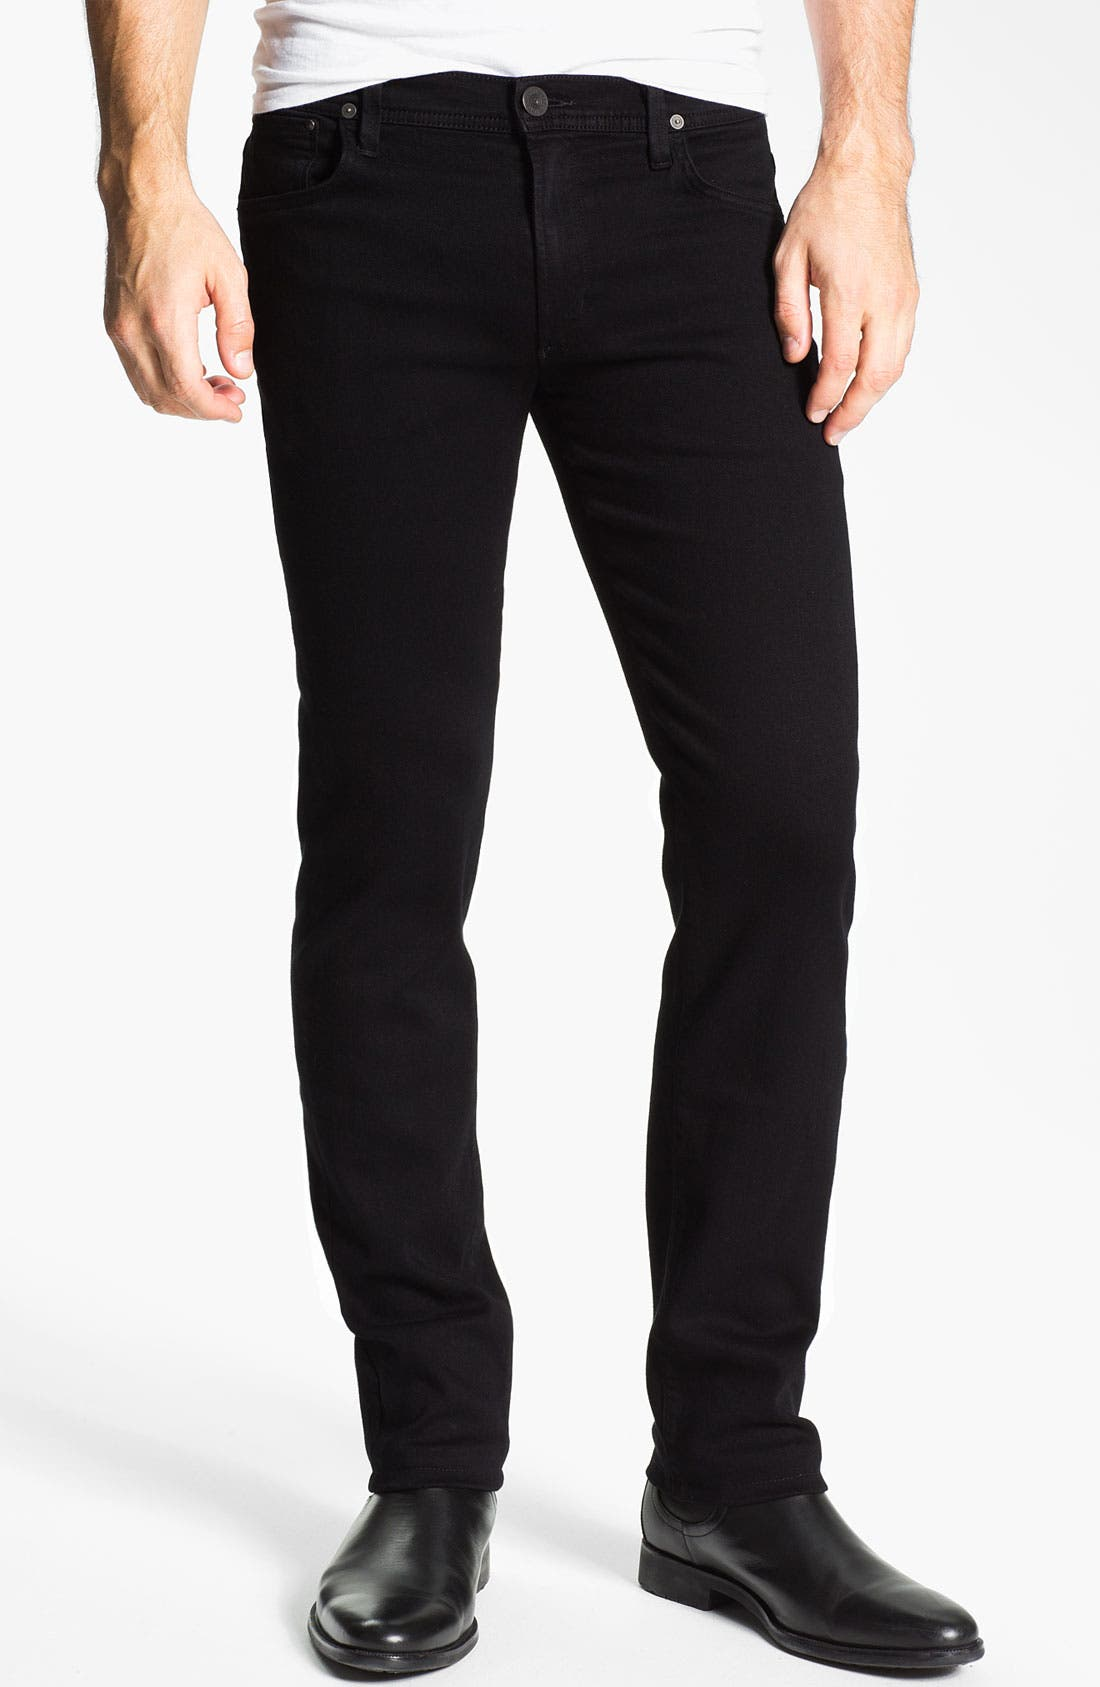 Main Image - Citizens of Humanity 'Adonis' Comfort Slim Fit Jeans (Brandon Black)